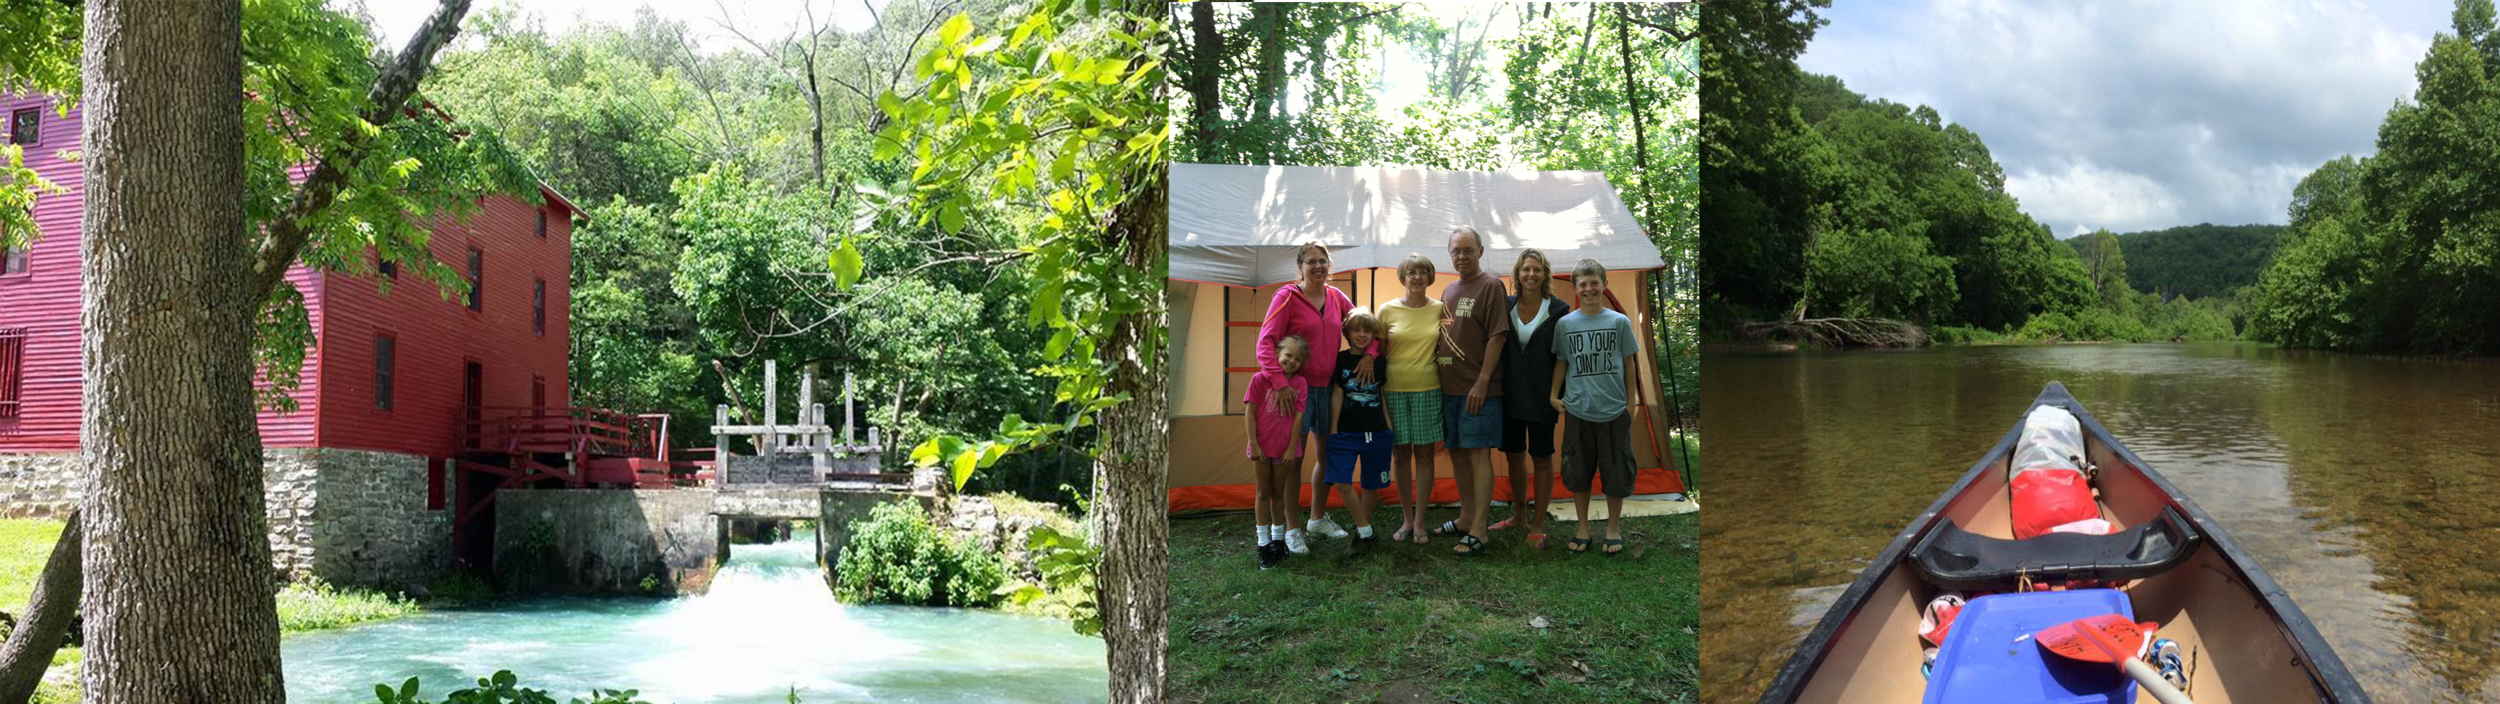 Alley Springs Mill, Alley Springs Campground, Jacks Fork River